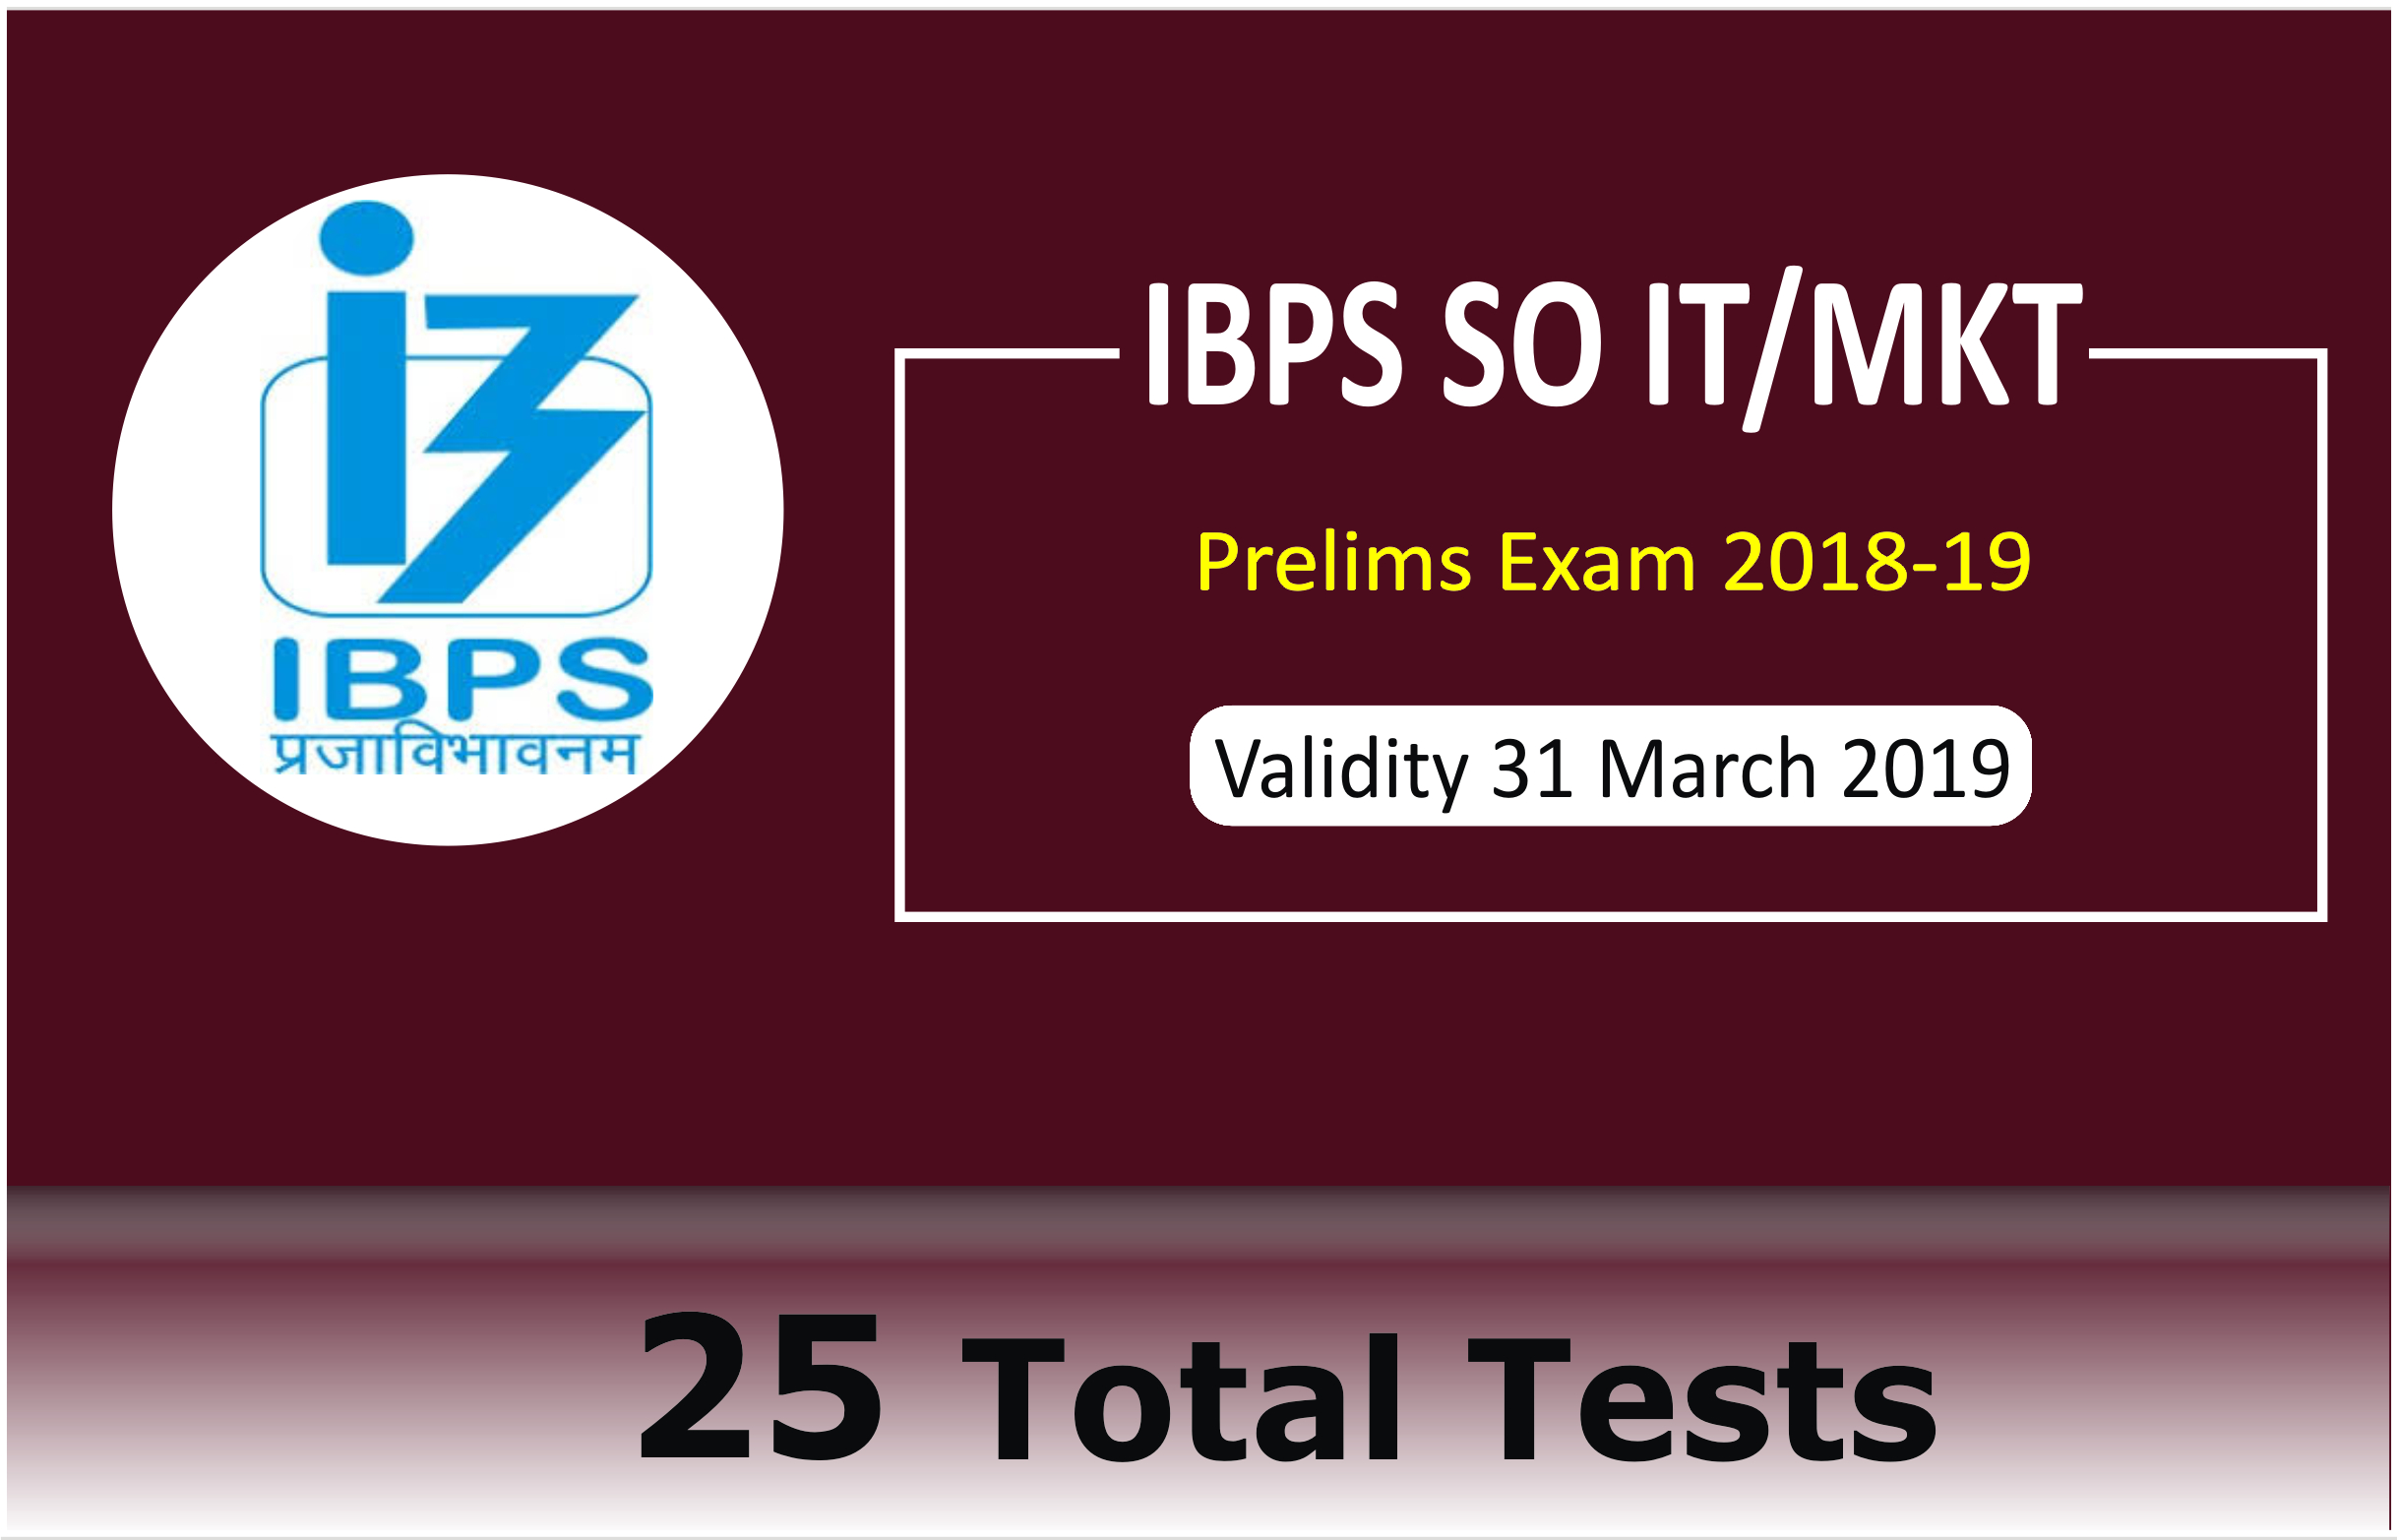 IBPS SO 2018-19 IT/MKT